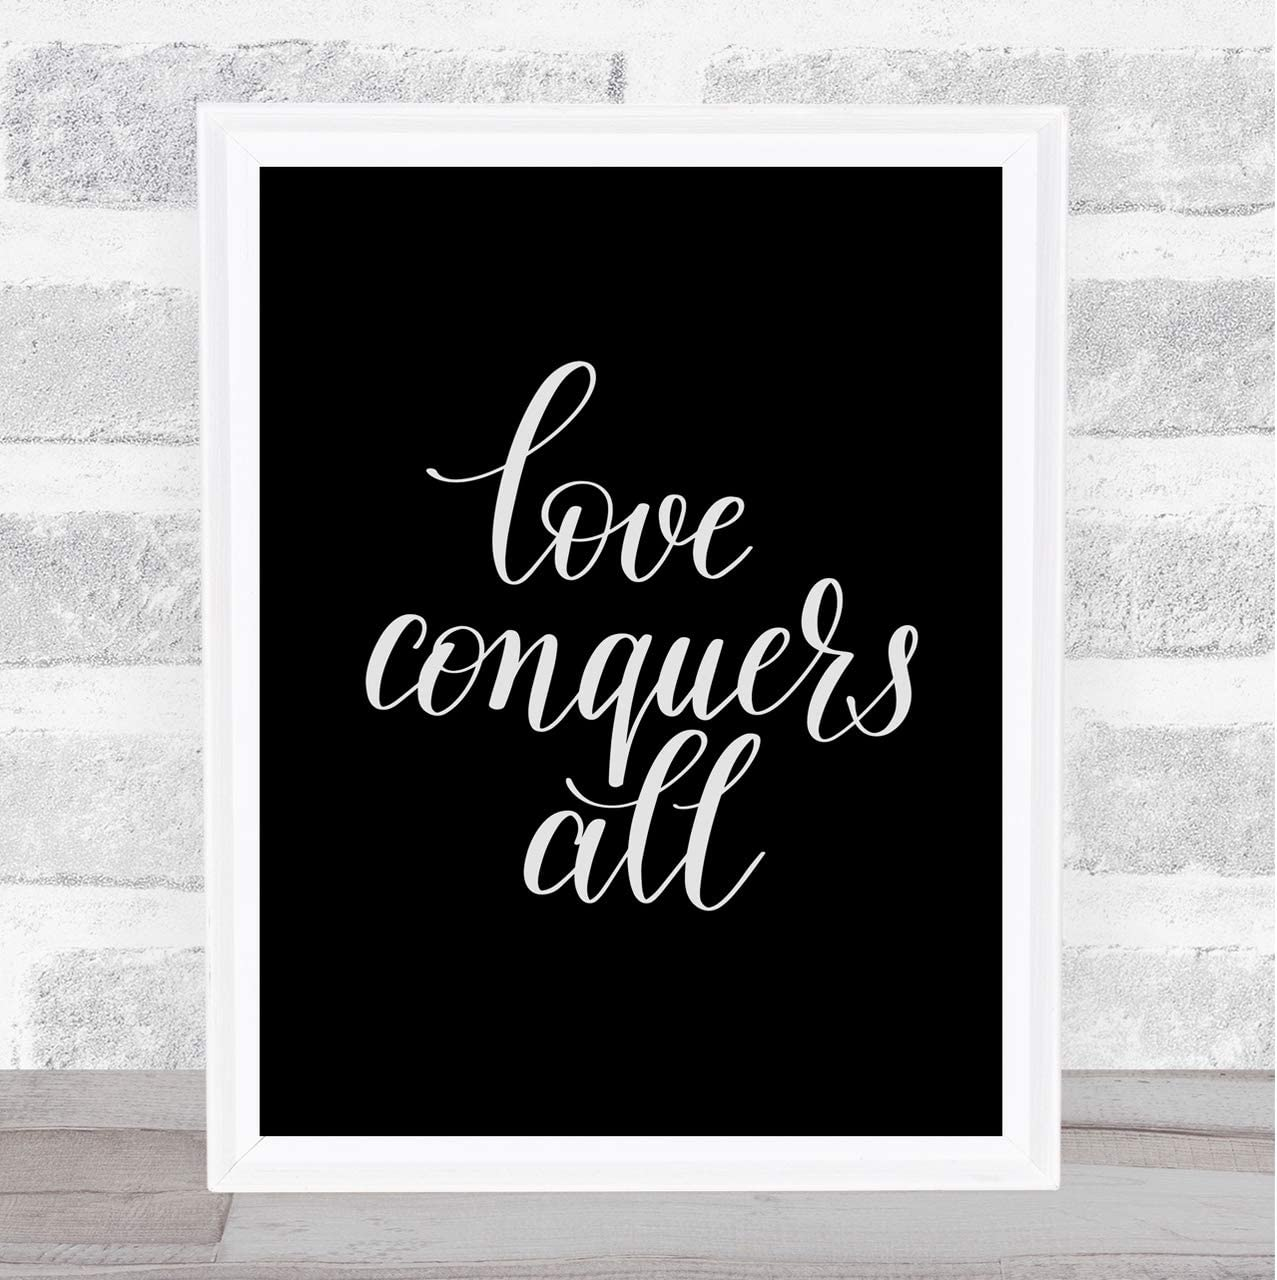 Conquer all can quote love Love Conquers